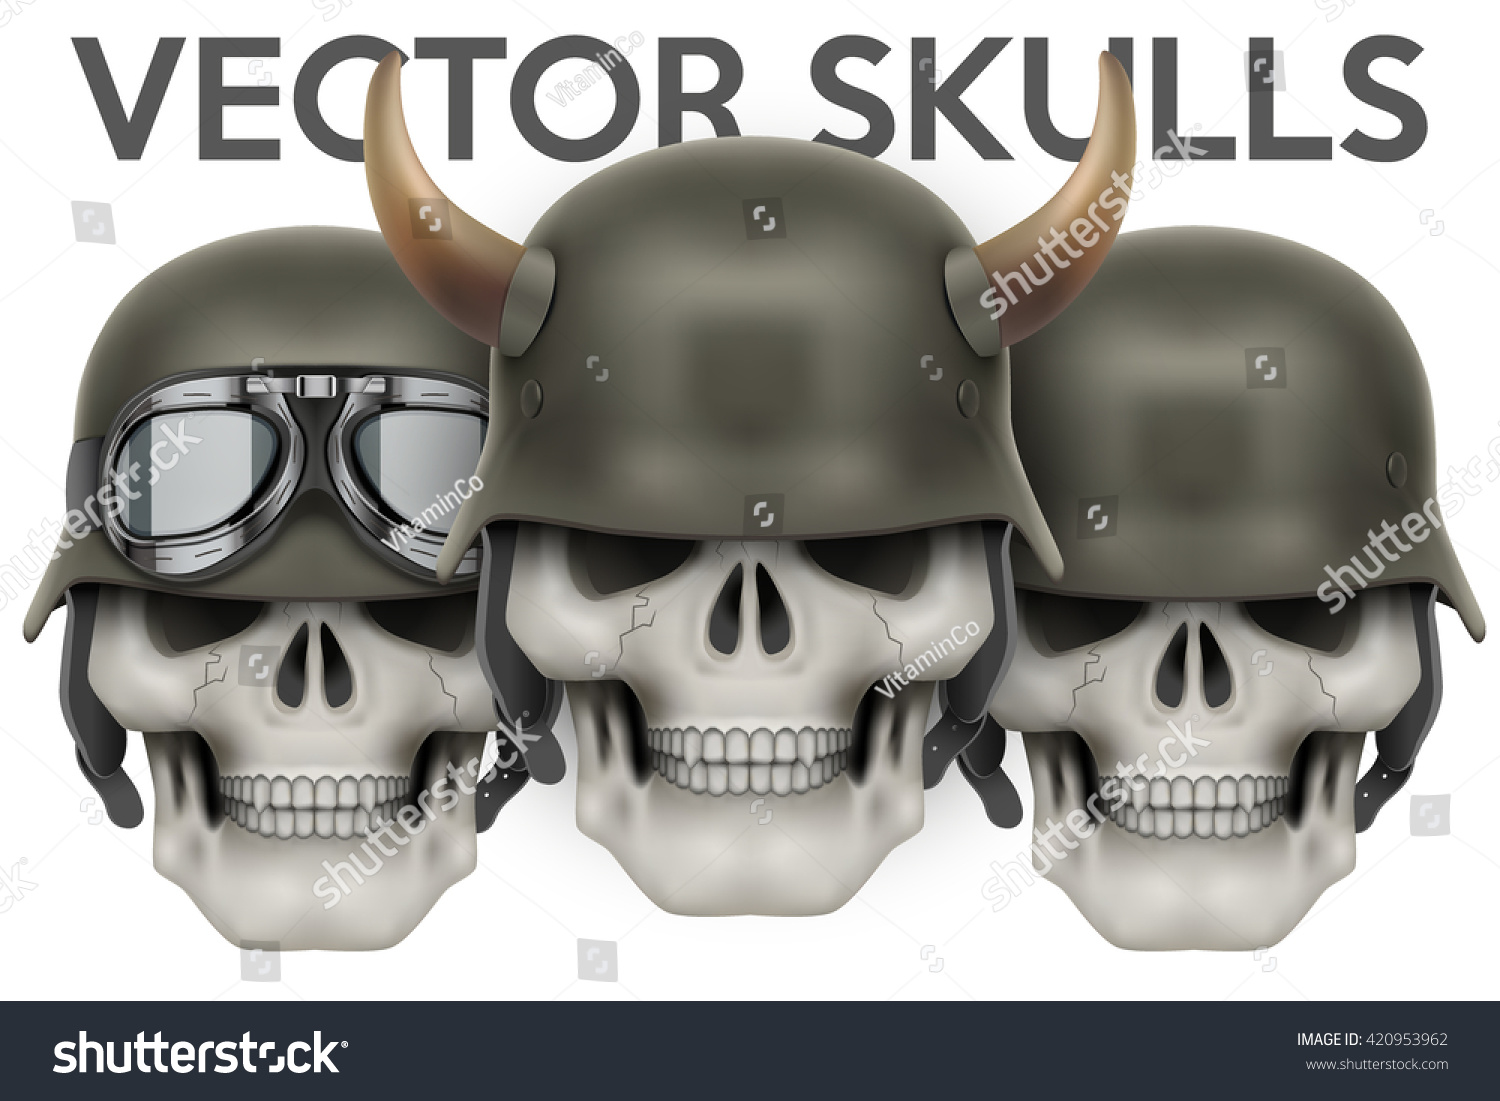 Helmet Skull Nazi Custom Stickers